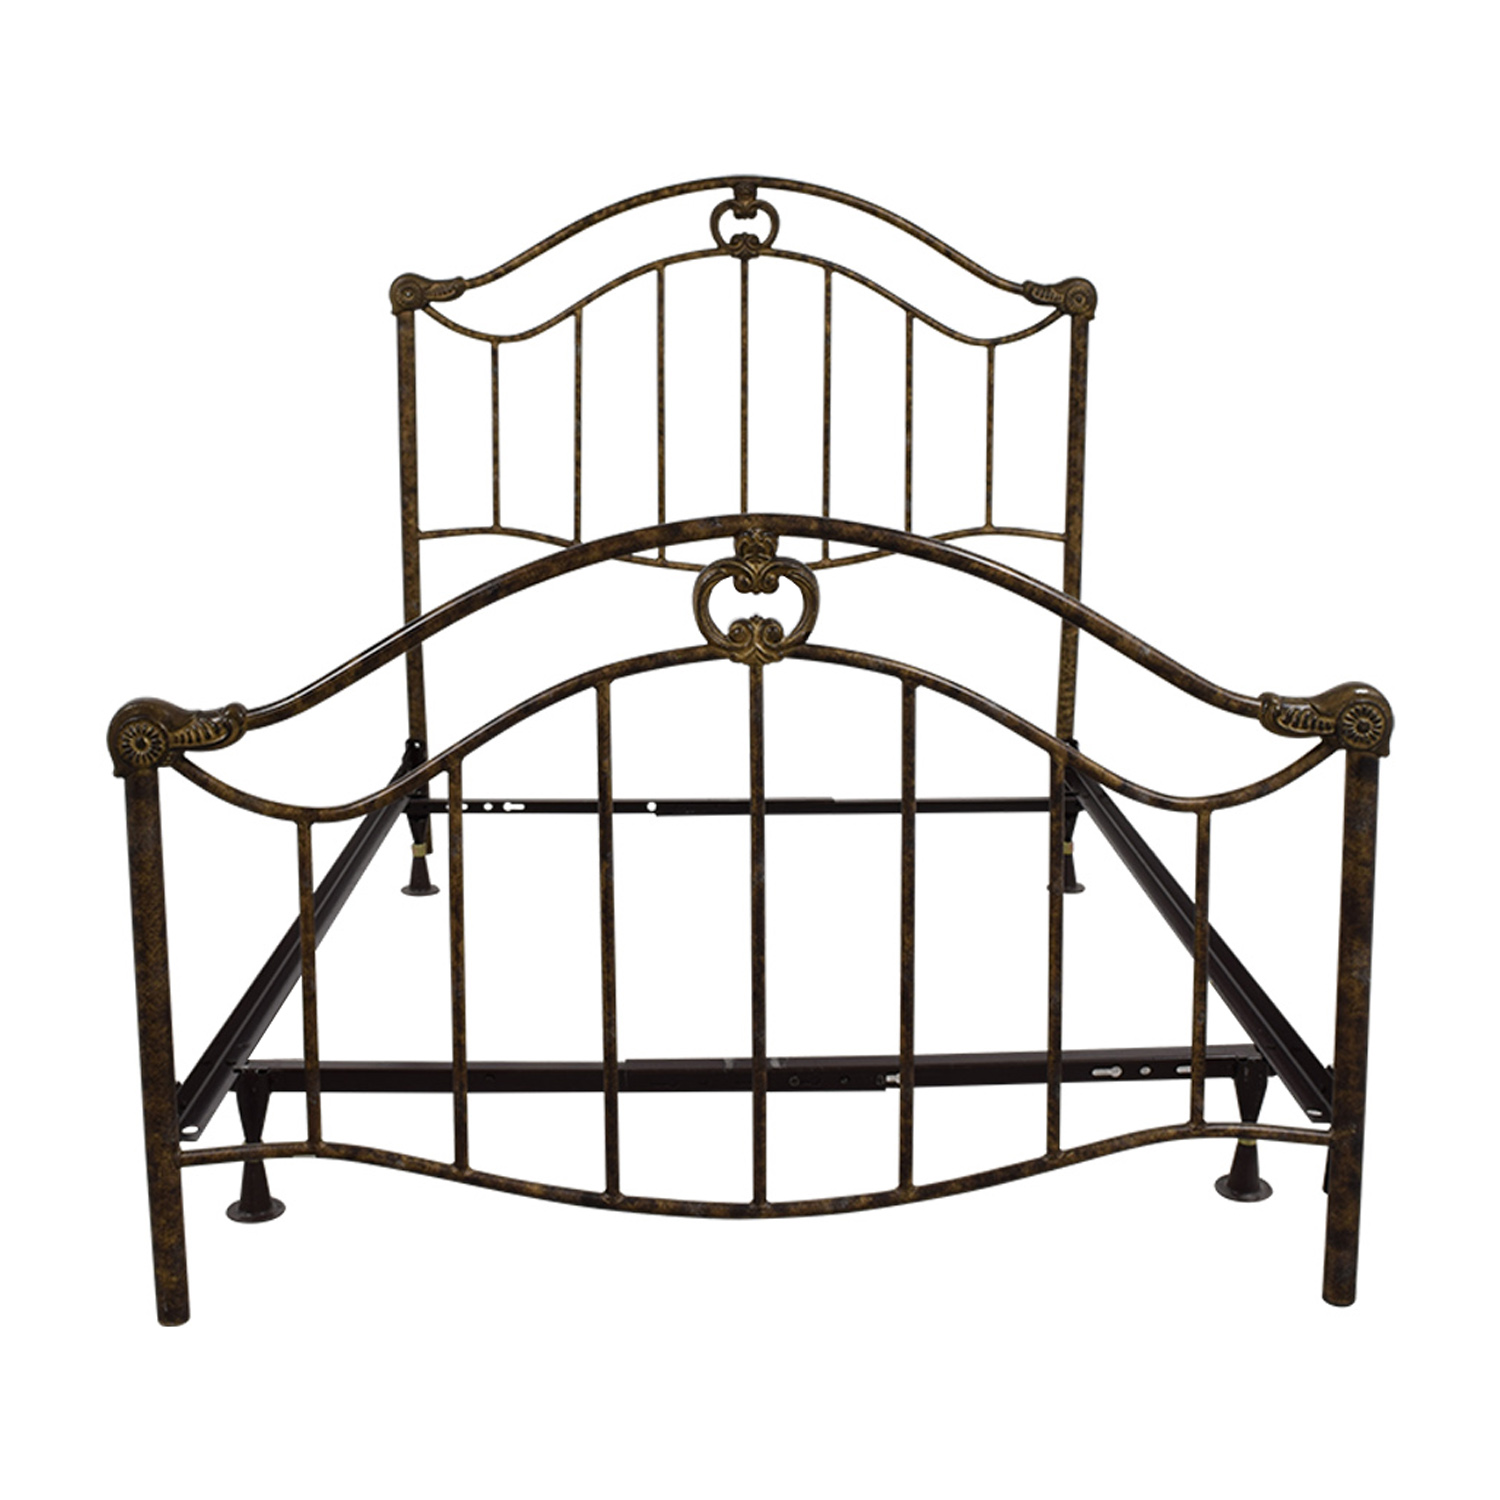 Full Bronze Metal Bed Frame on sale